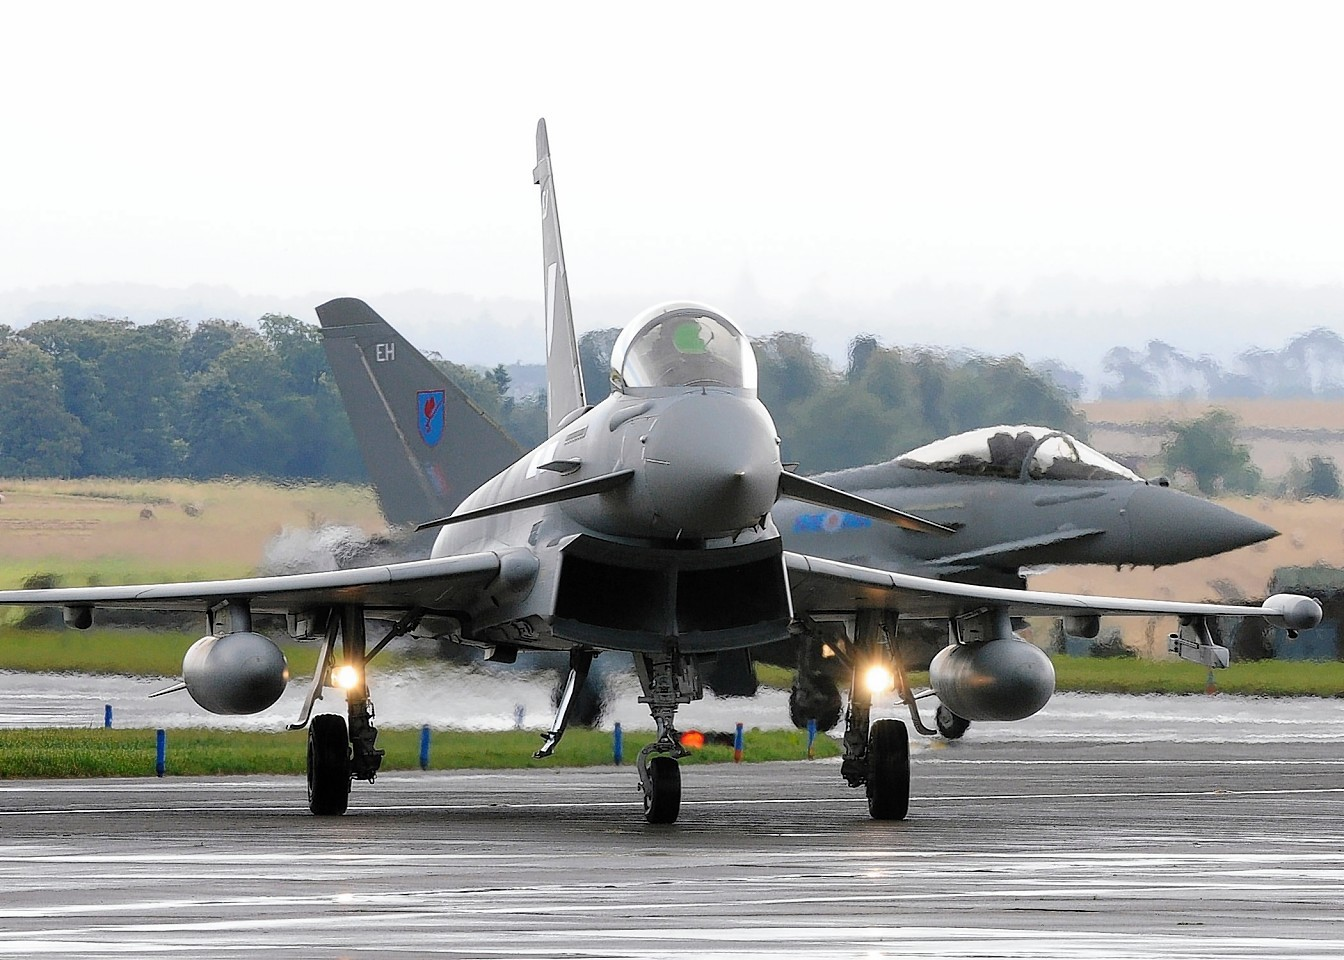 Typhoons from RAF Lossiemouth